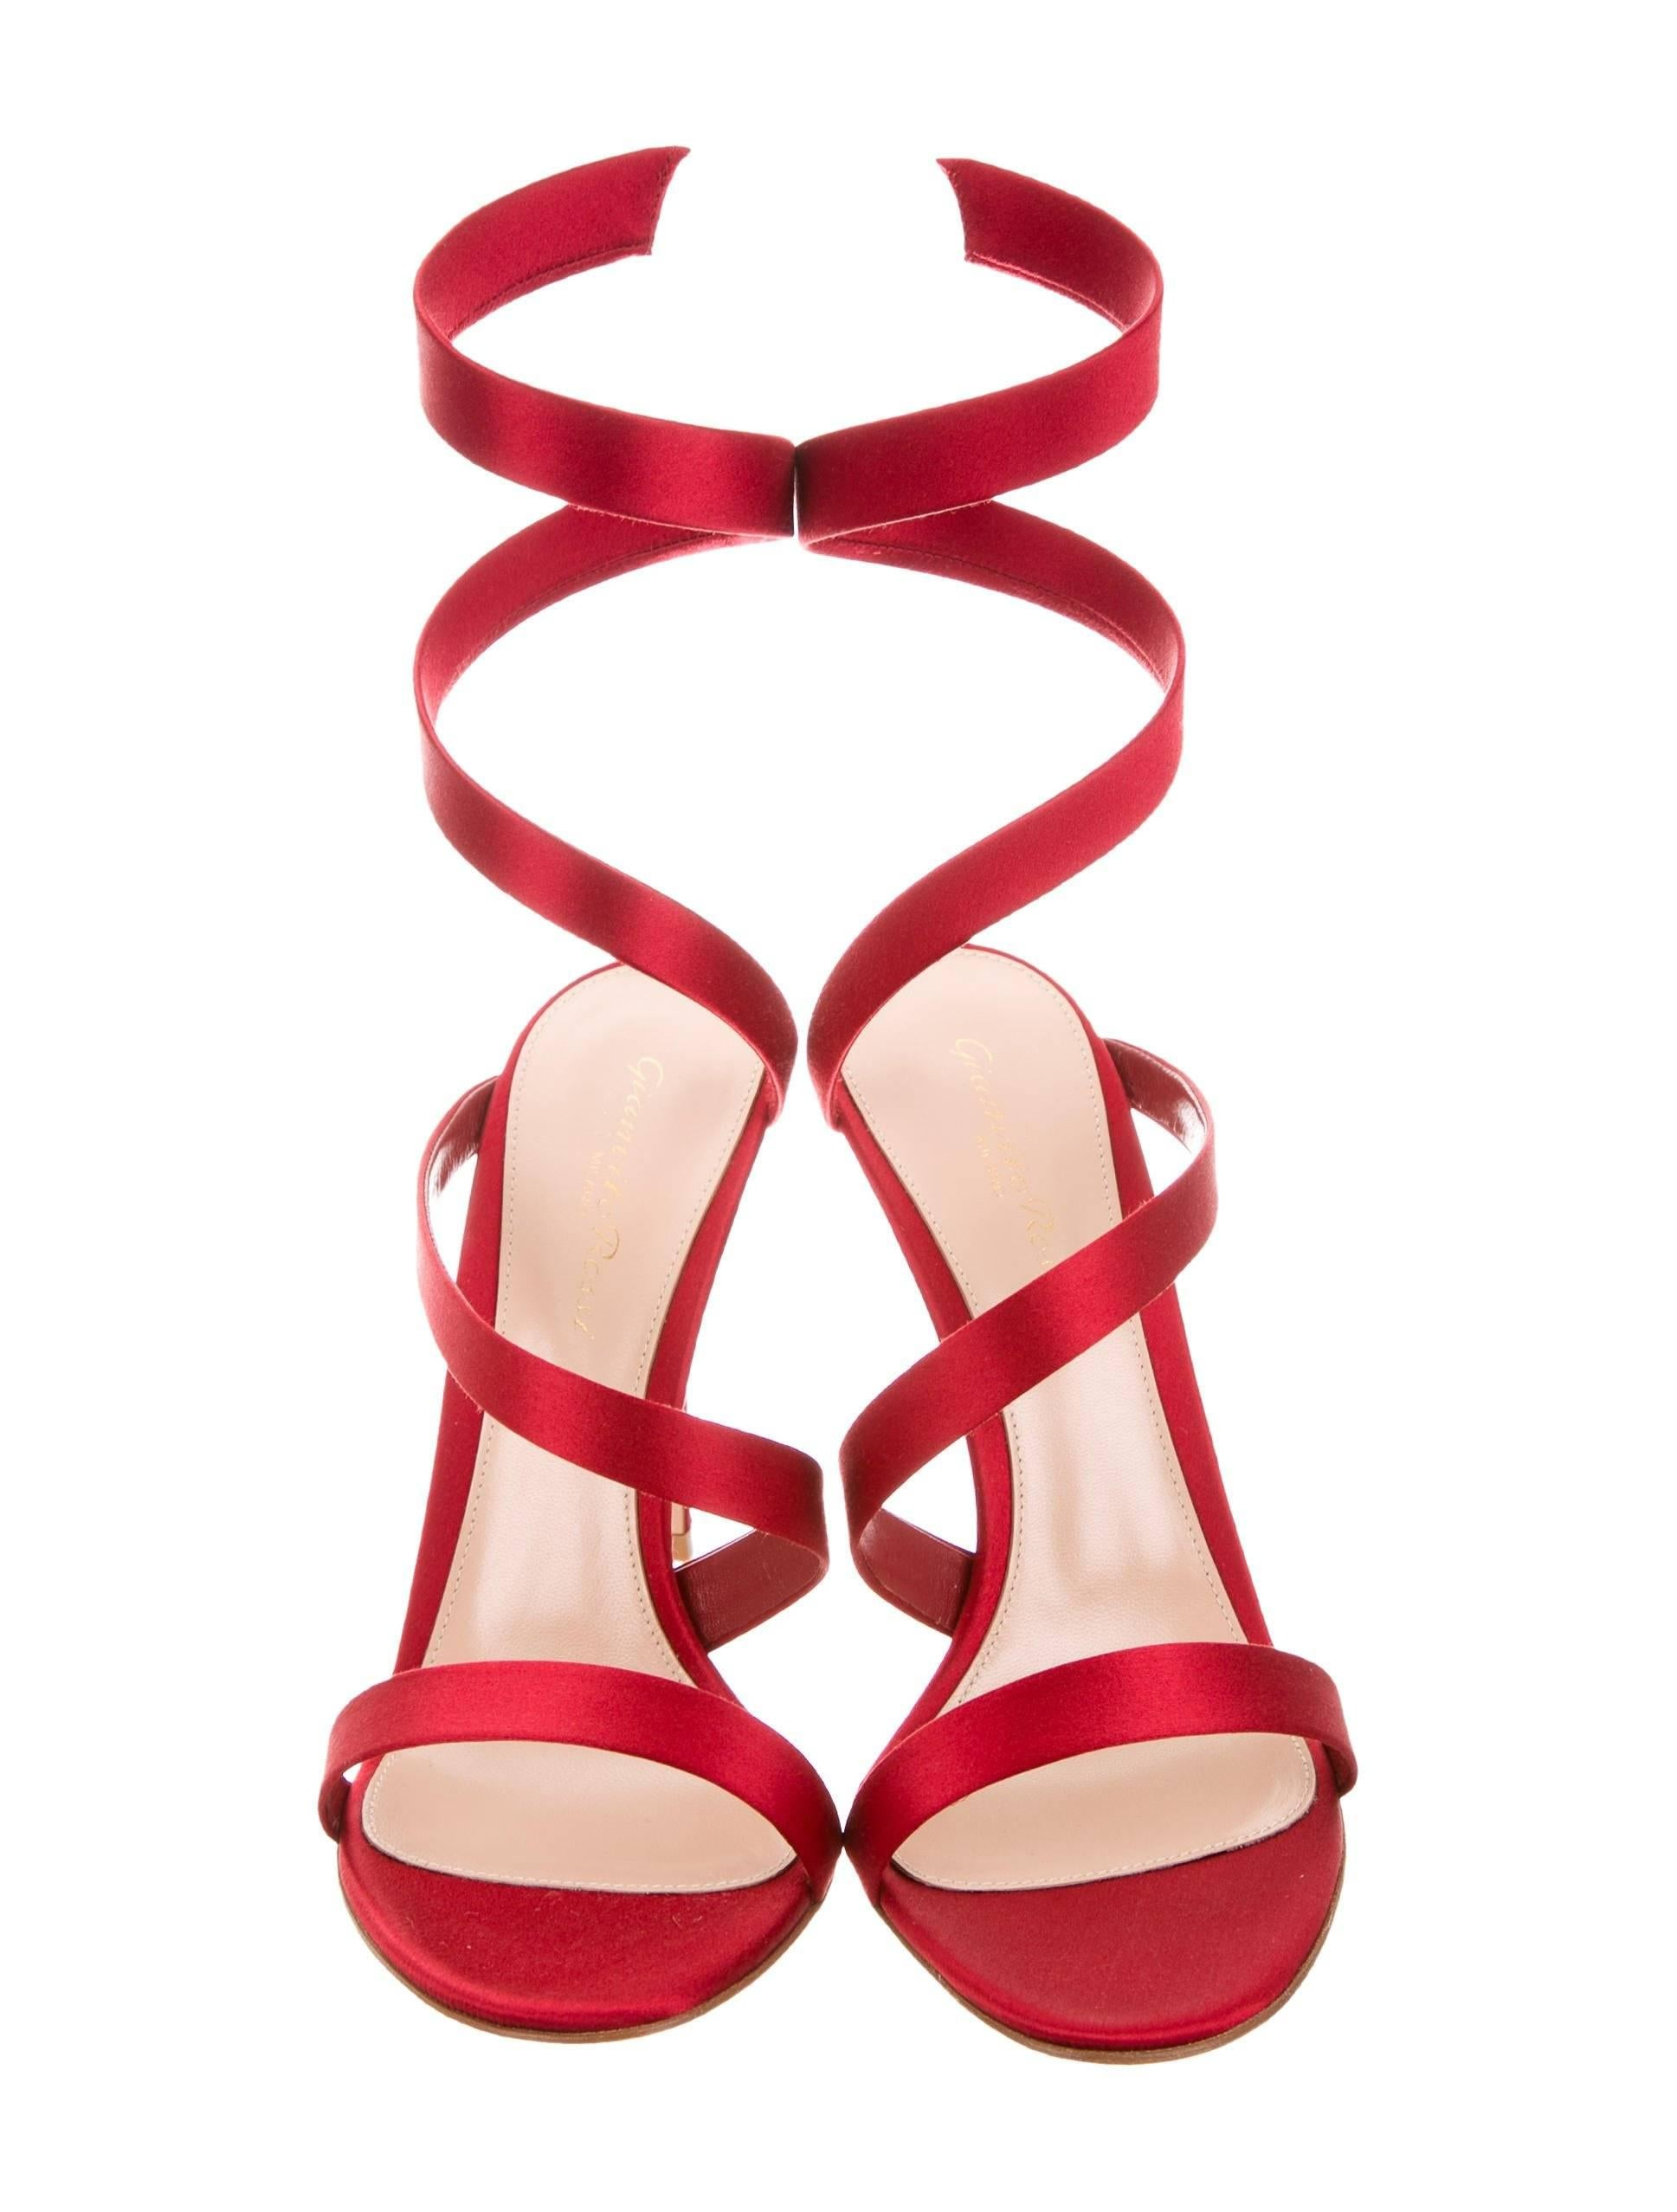 1064df9a2b4 Gianvito Rossi Red Satin Wraparound Evening Sandals Heels at 1stdibs